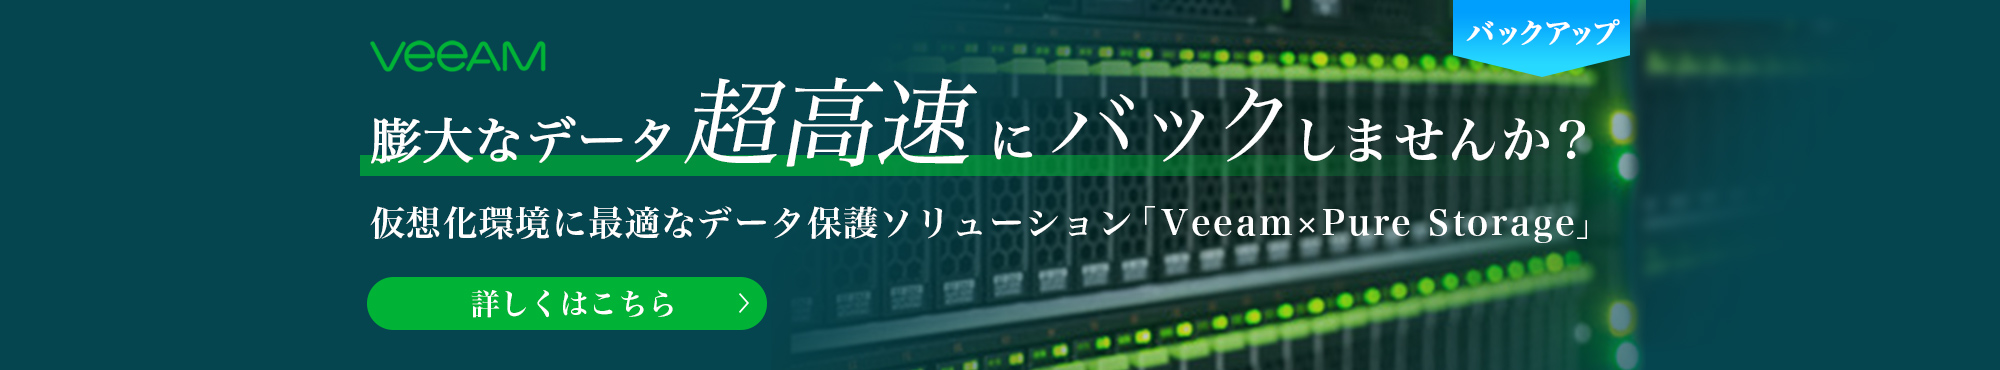 Veeam_lp